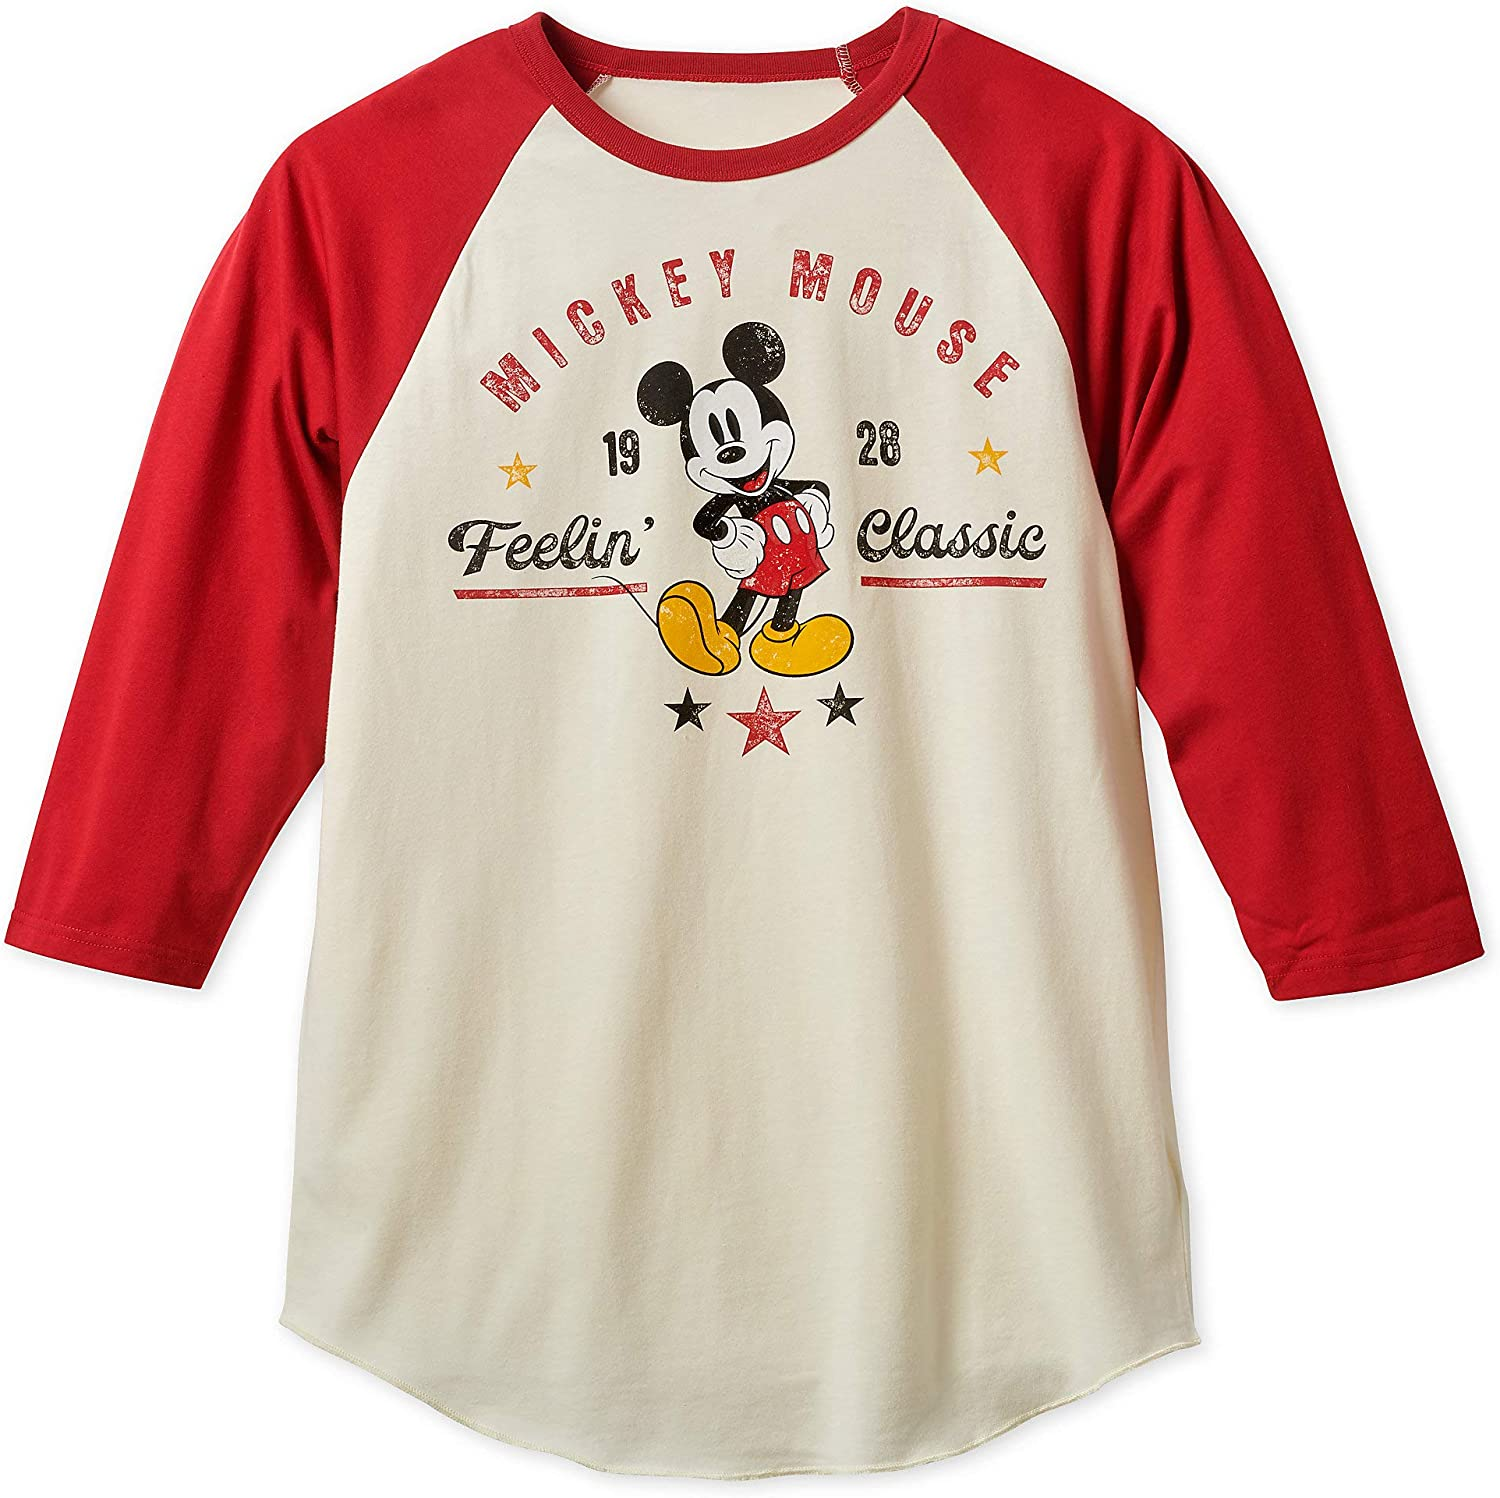 Mickey Mouse Front /& Back Women/'s Tee Shirt Red